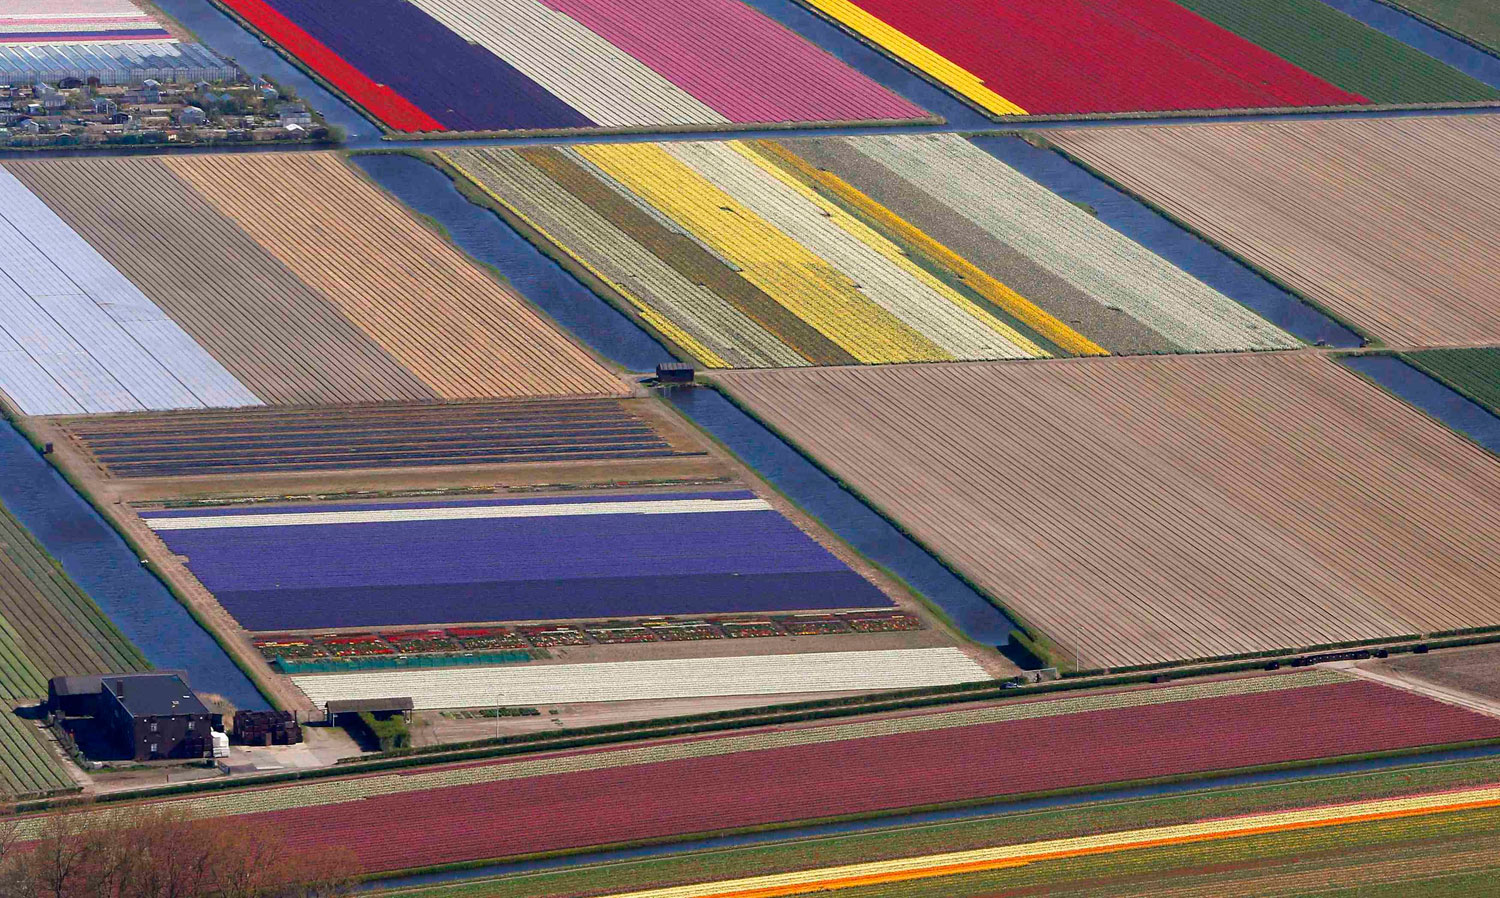 An aerial view of flower fields near the Keukenhof park, in Lisse, Netherlands, on April 9, 2014.